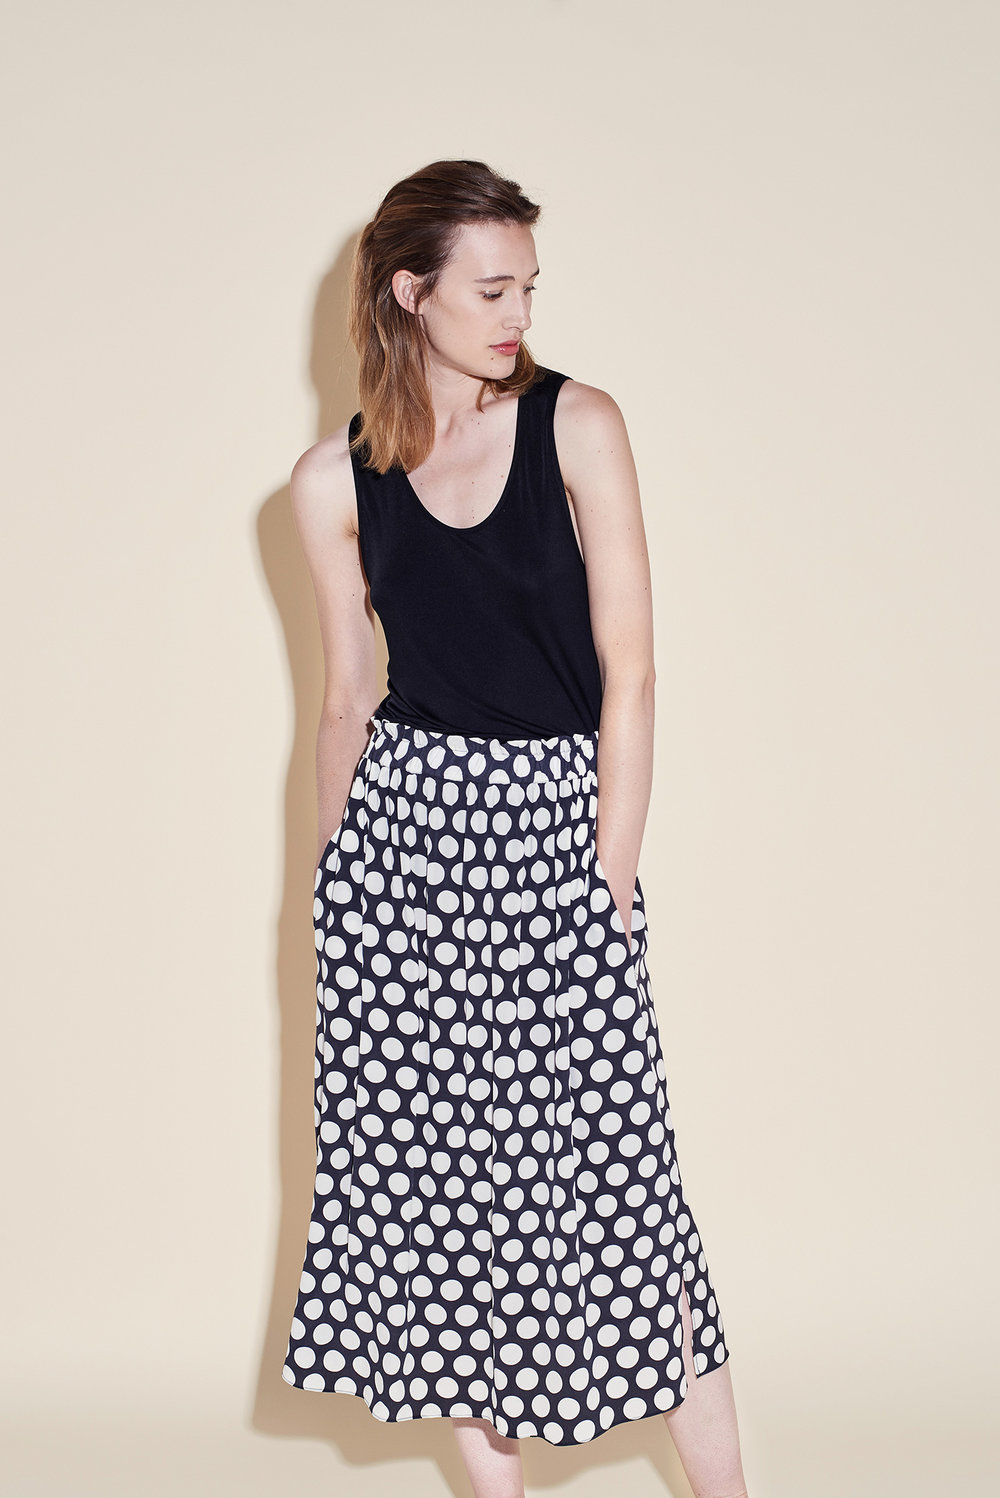 Long skirt crepe silk polka dots white tank top silk jersey black